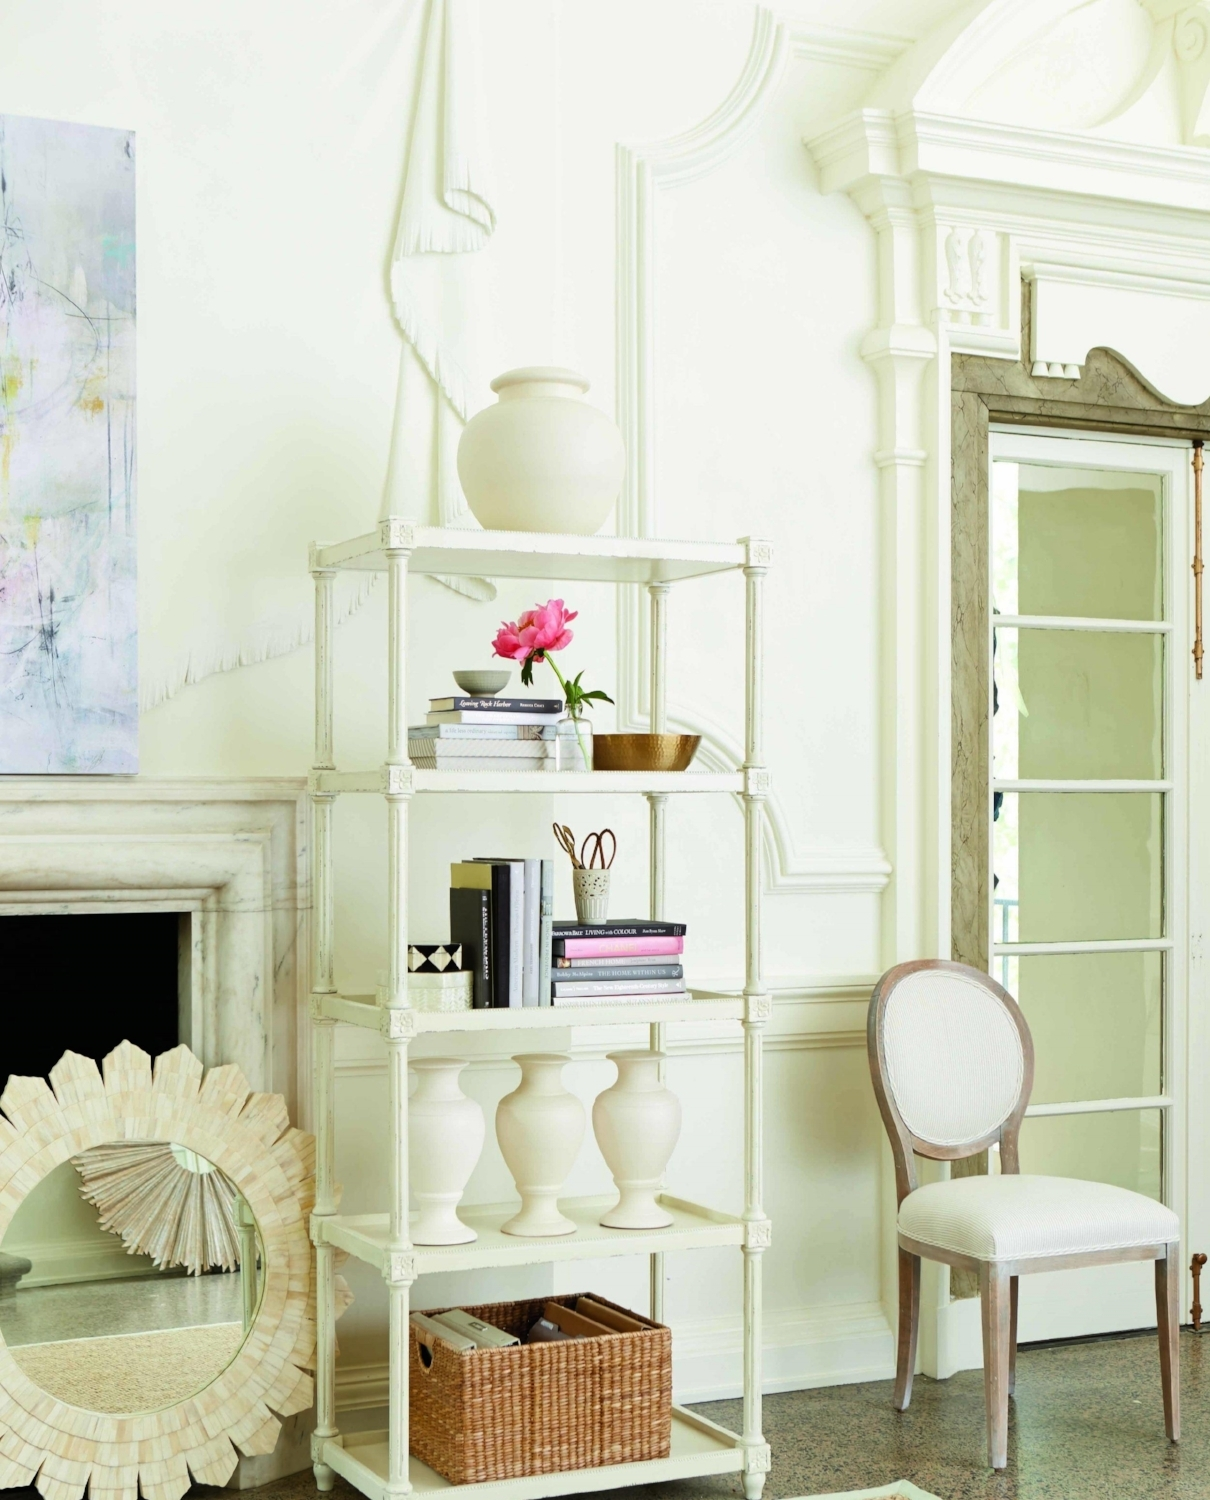 Casual elegance with creamy white walls. Moldings. Architectural elements. Photo courtesy of Ballard Designs.